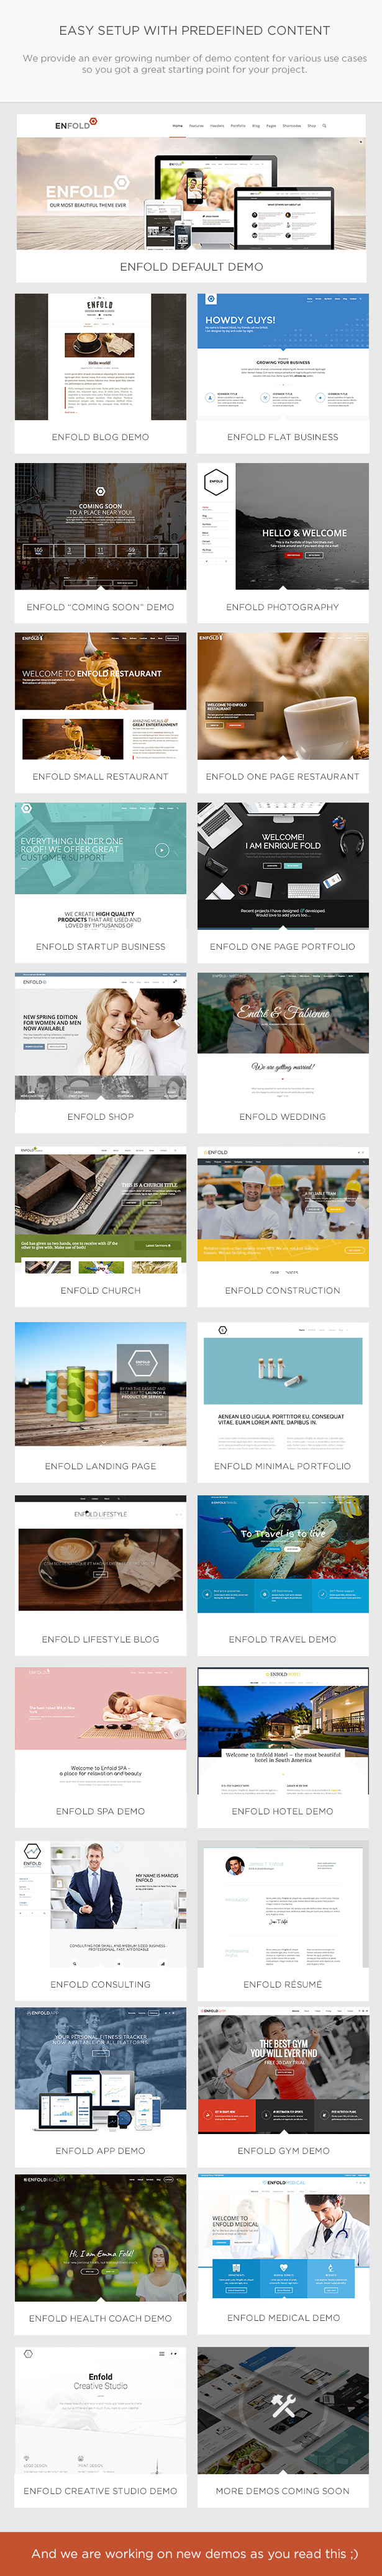 Enfold - Responsive Multi-Purpose Theme - 3